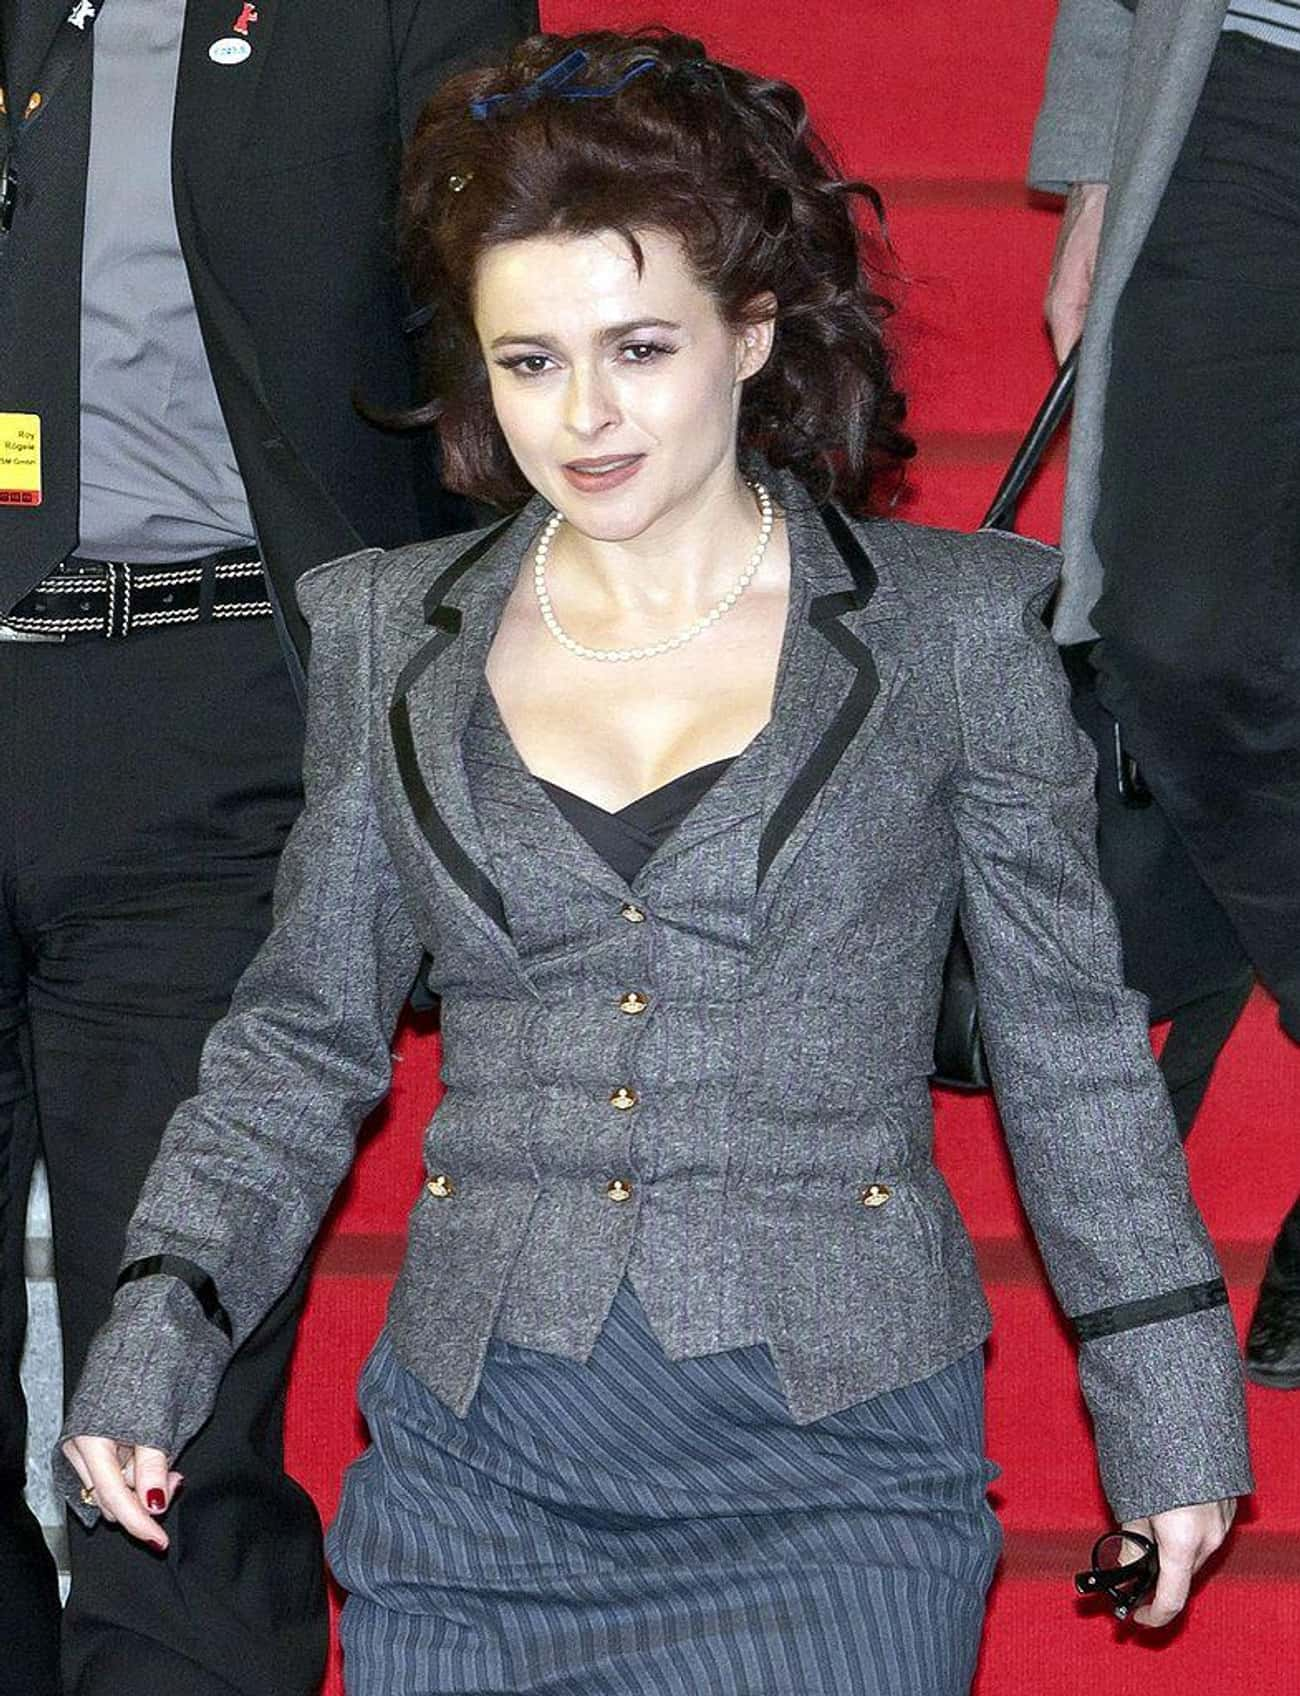 She Has Her Own Fashion Line is listed (or ranked) 4 on the list Weirdly Charming And Bizarre Things Most People Don't Know About Helena Bonham Carter